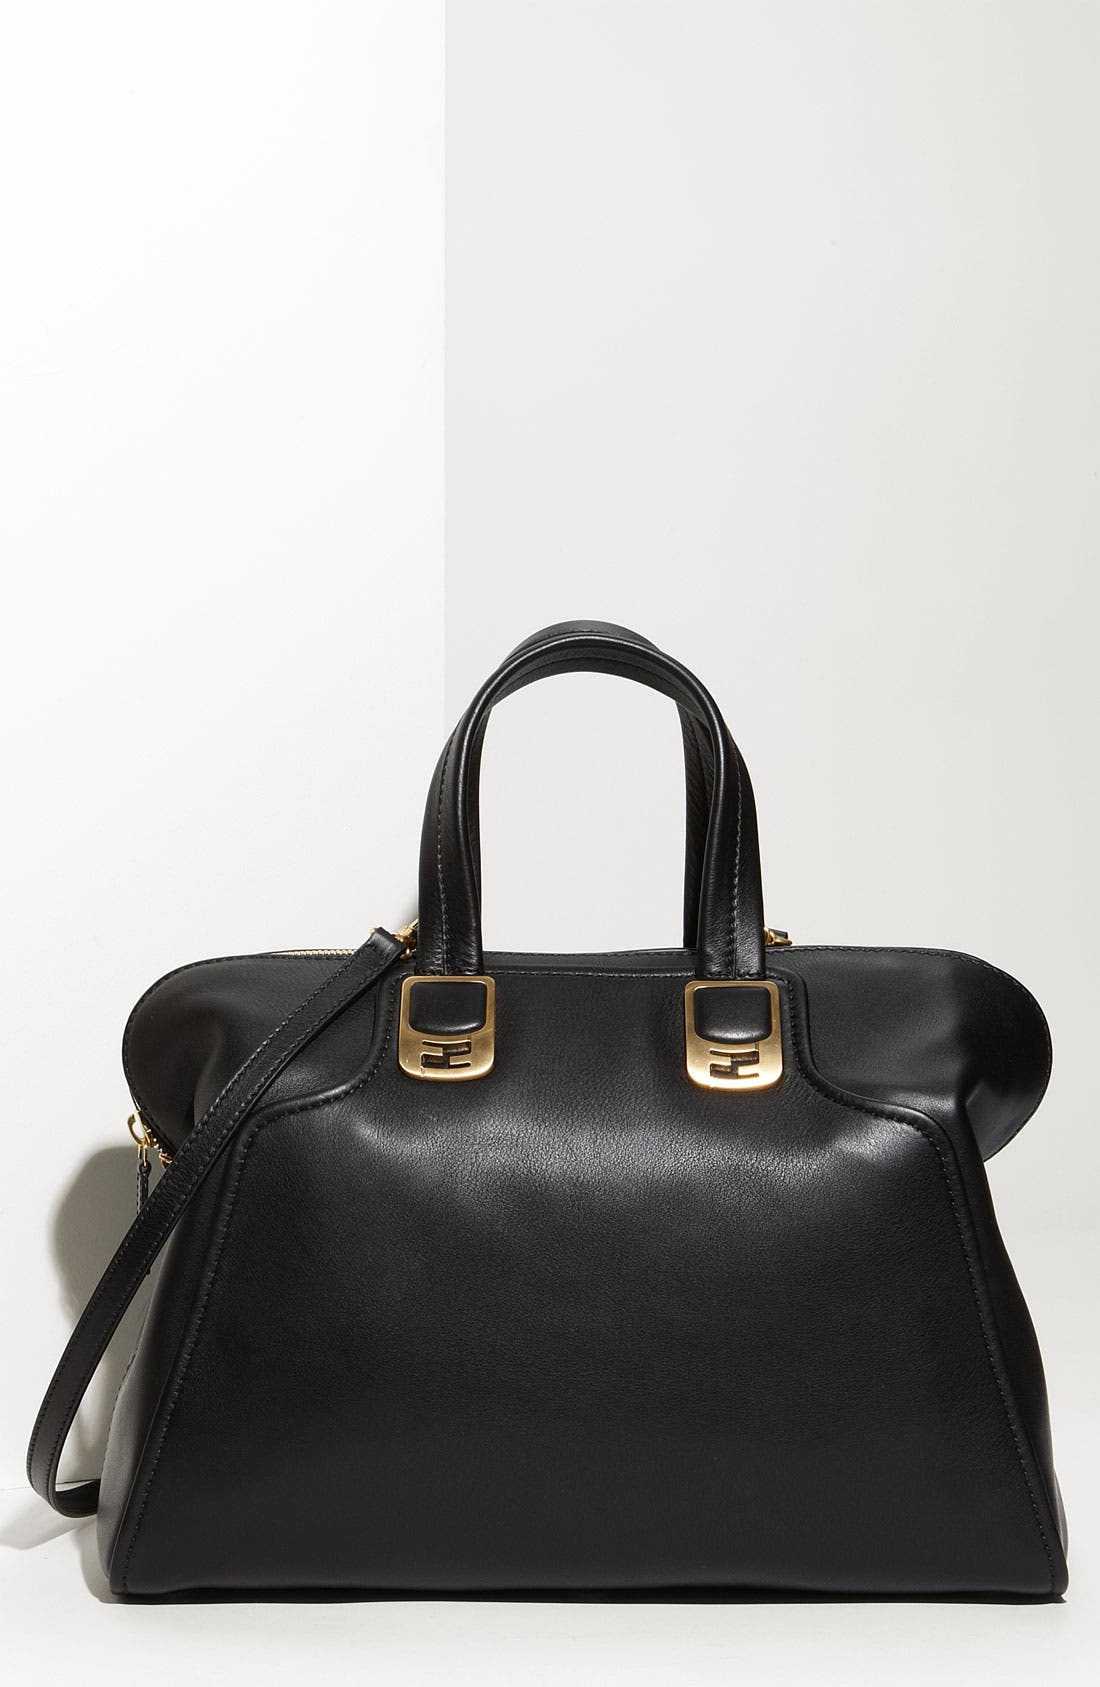 Main Image - Fendi 'Chameleon' Leather Tote